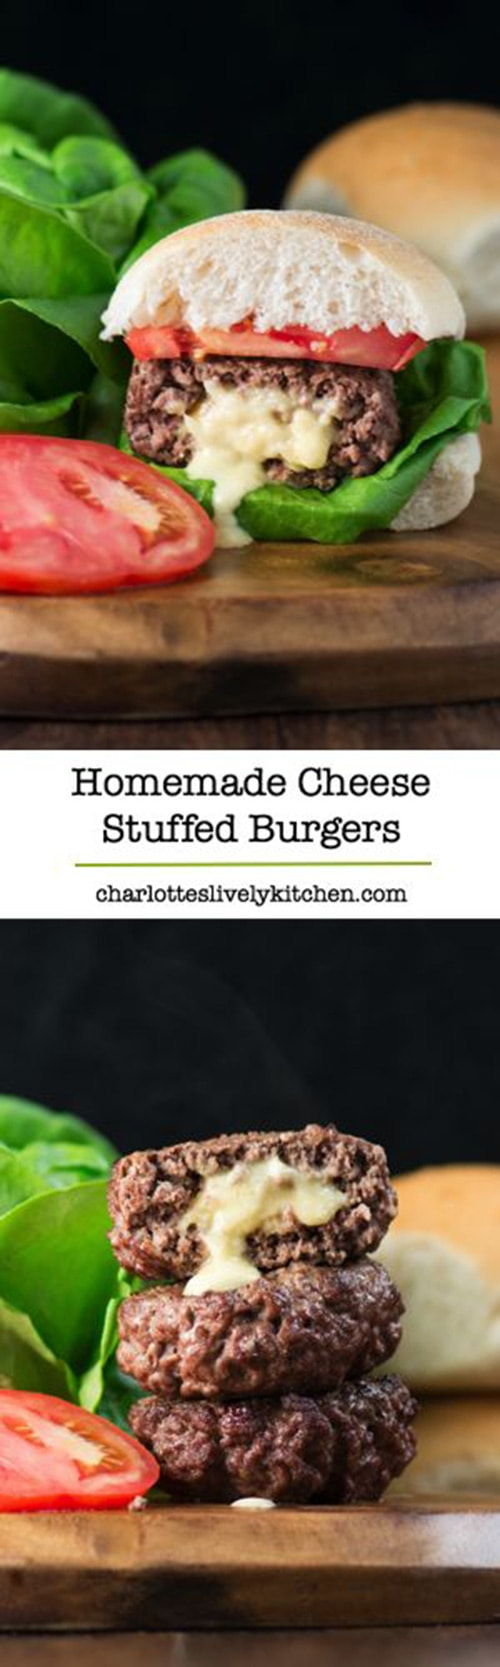 Homemade cheese stuffed burgers